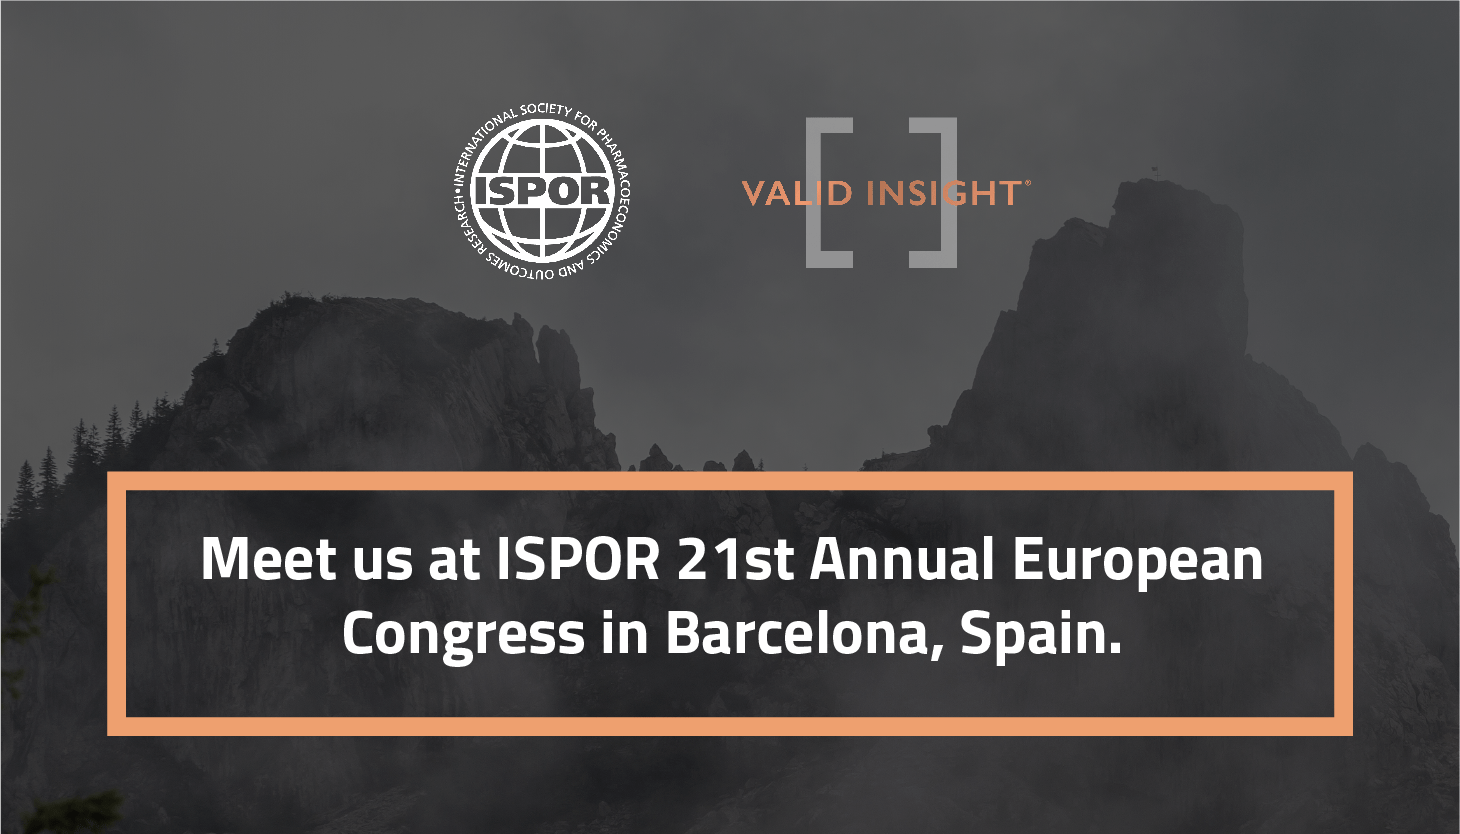 ISPOR 21at Annual European Congress